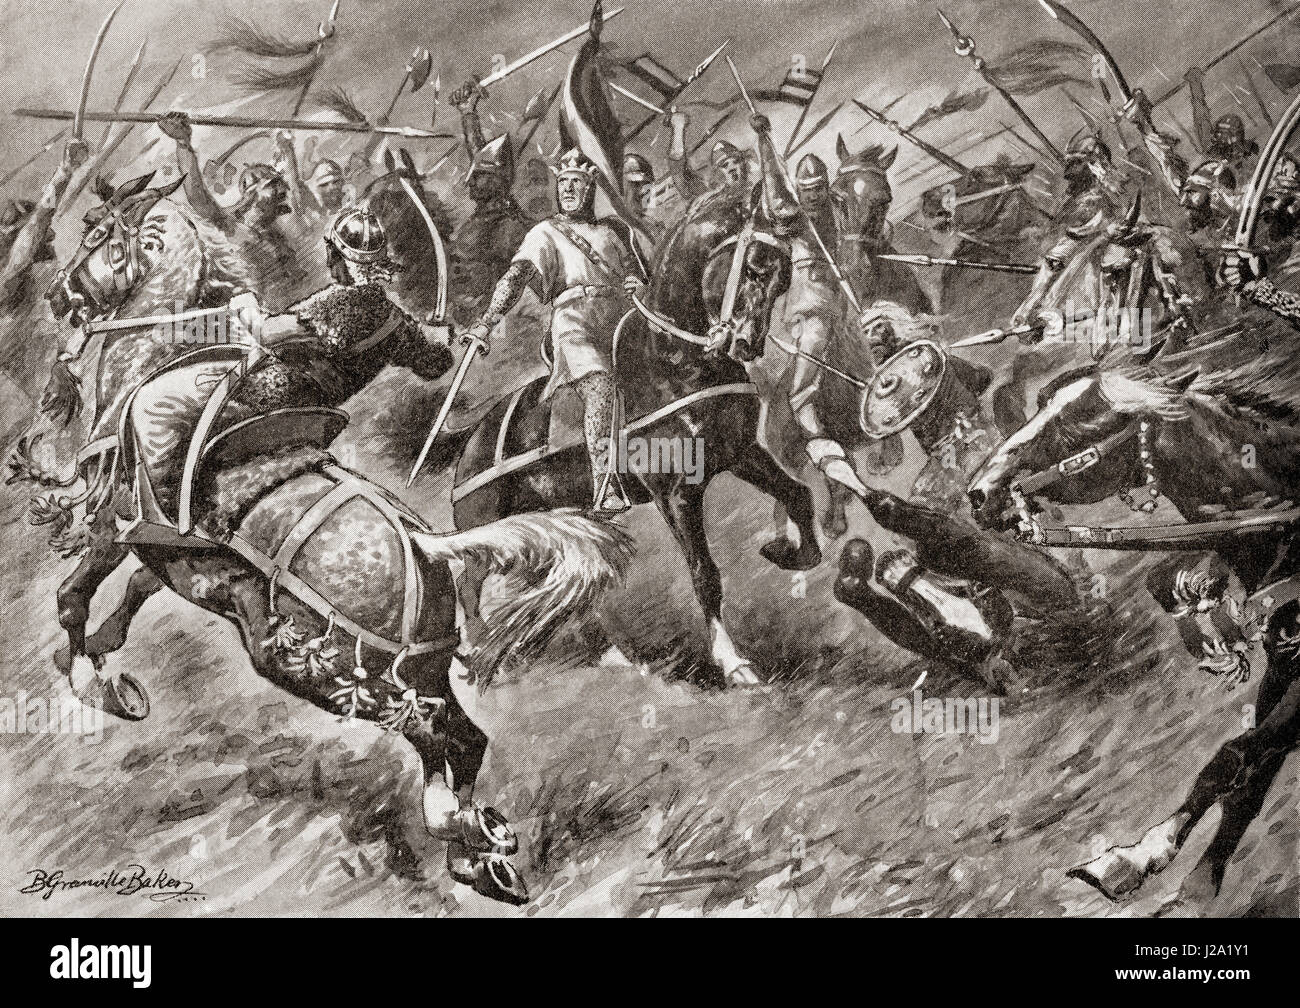 Alfonso of Aragon leads an army against the Moors in the early 12th century.  Alfonso I, C.1073-1134, called the - Stock Image